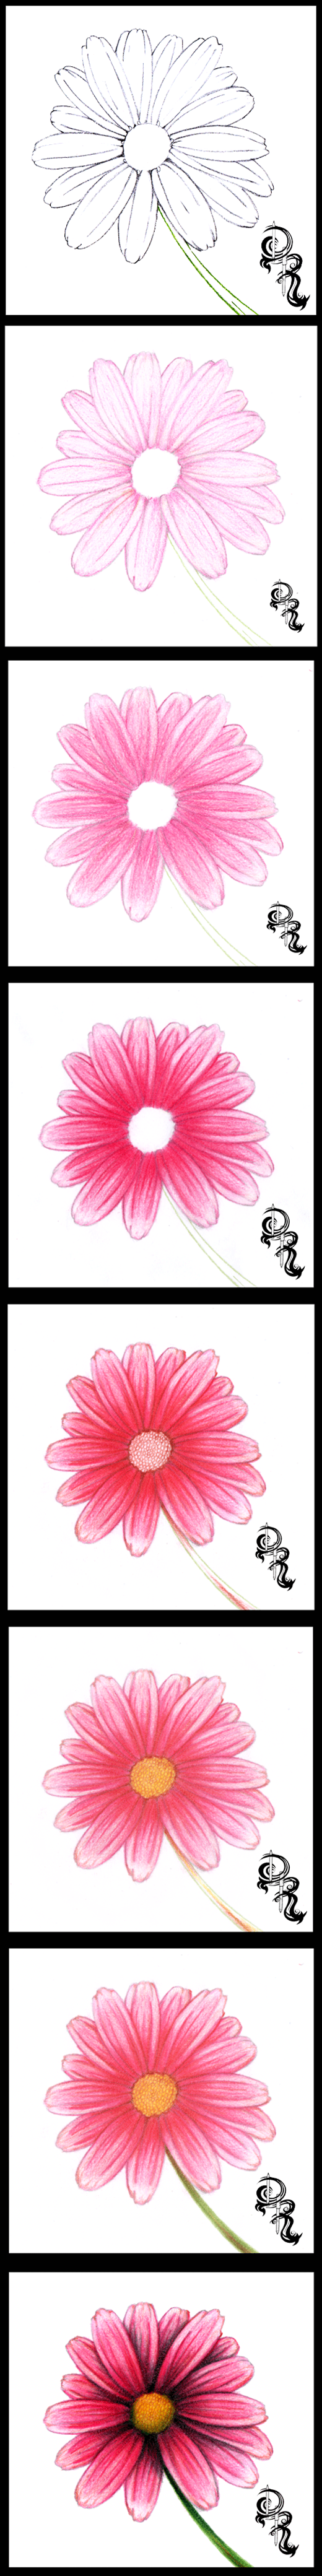 How To Draw A Daisy With Colored Pencils A Stepbystep Image Of